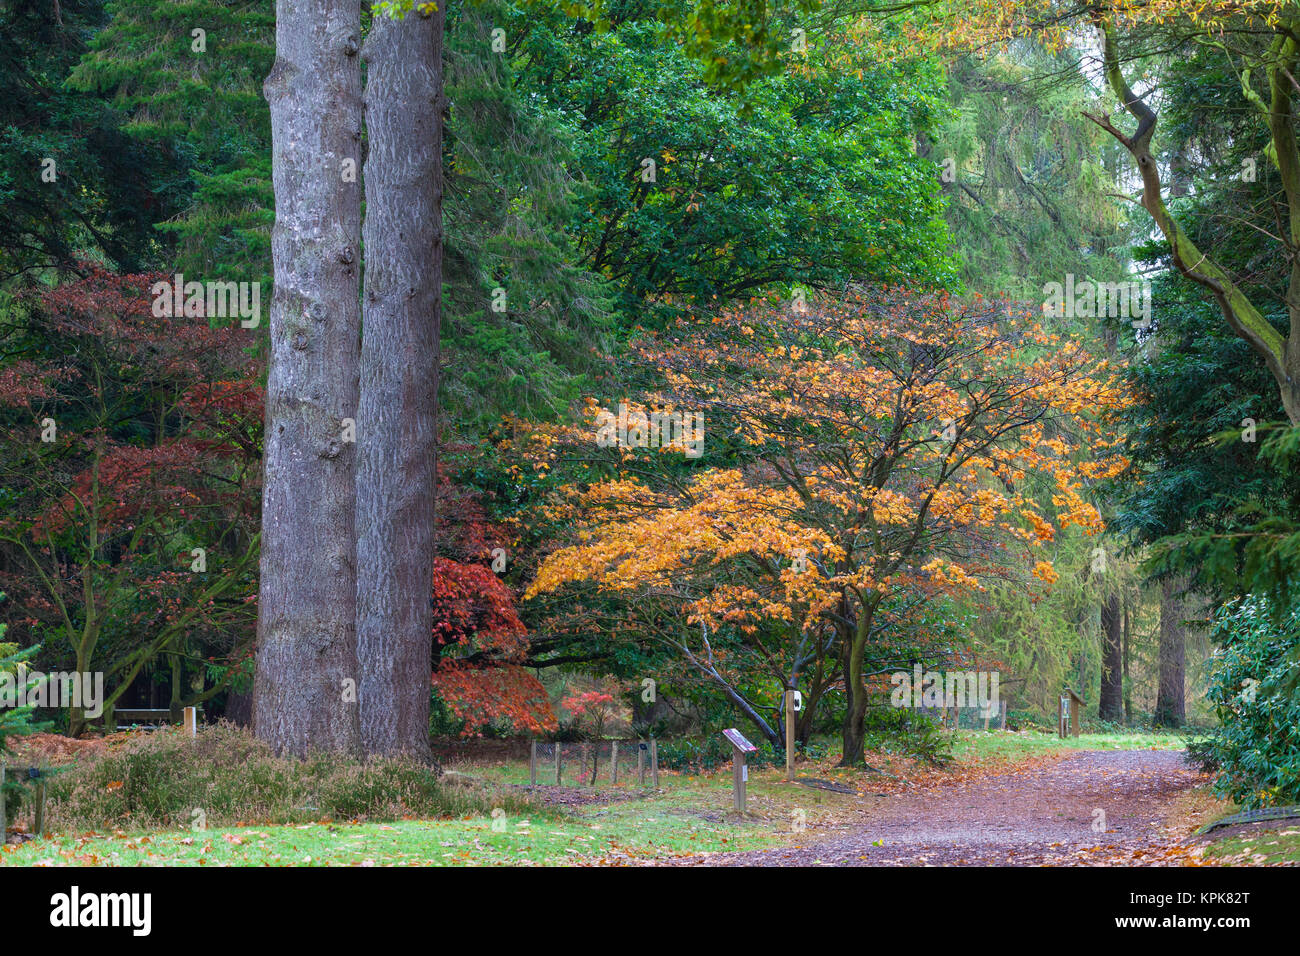 Bedgebury National Pinetum and Forest, Lady Oak Lane, Goudhurst, kent, uk. Autumn scene - Stock Image